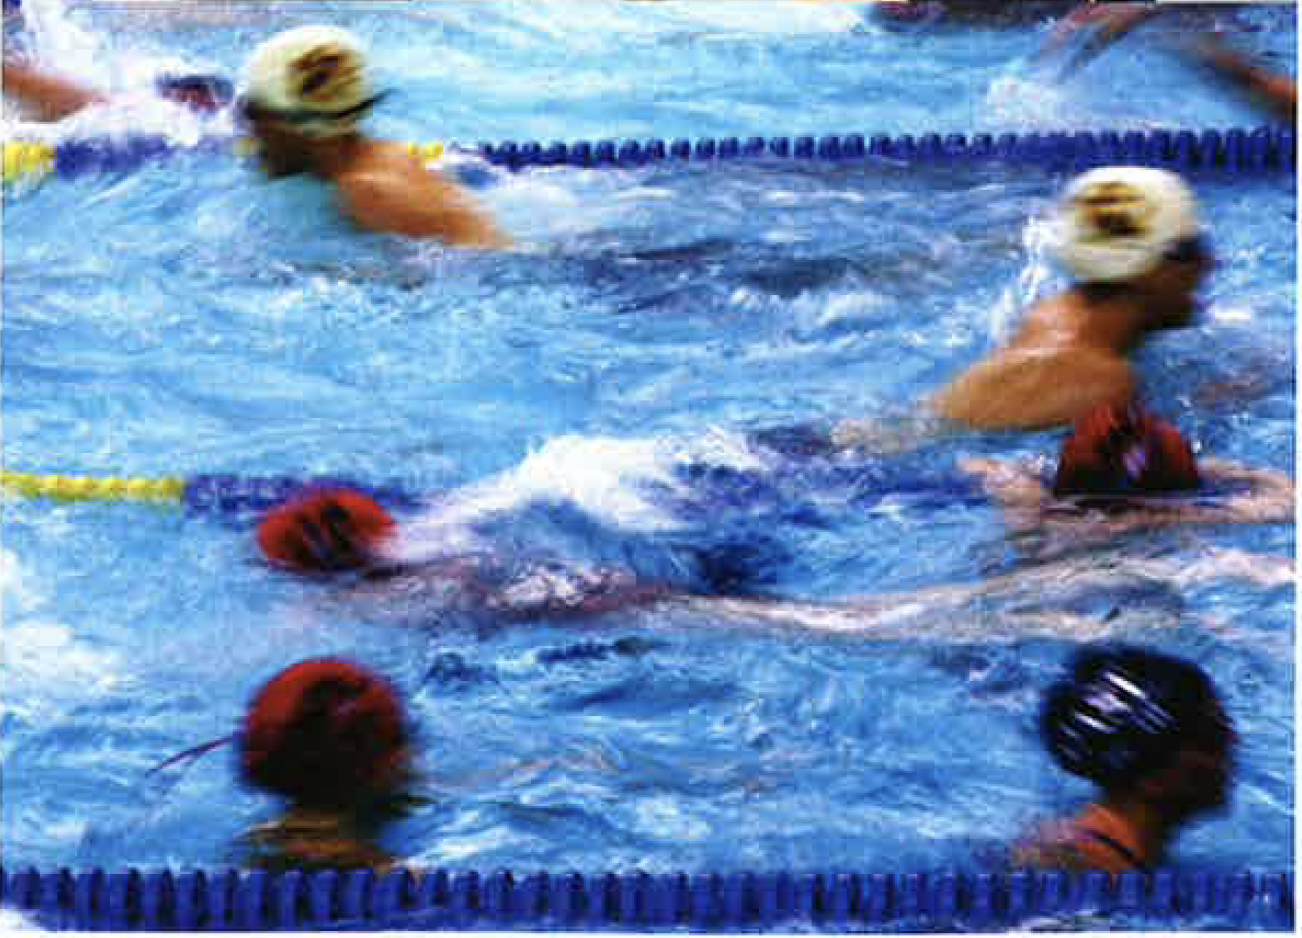 Competitive Swimmers